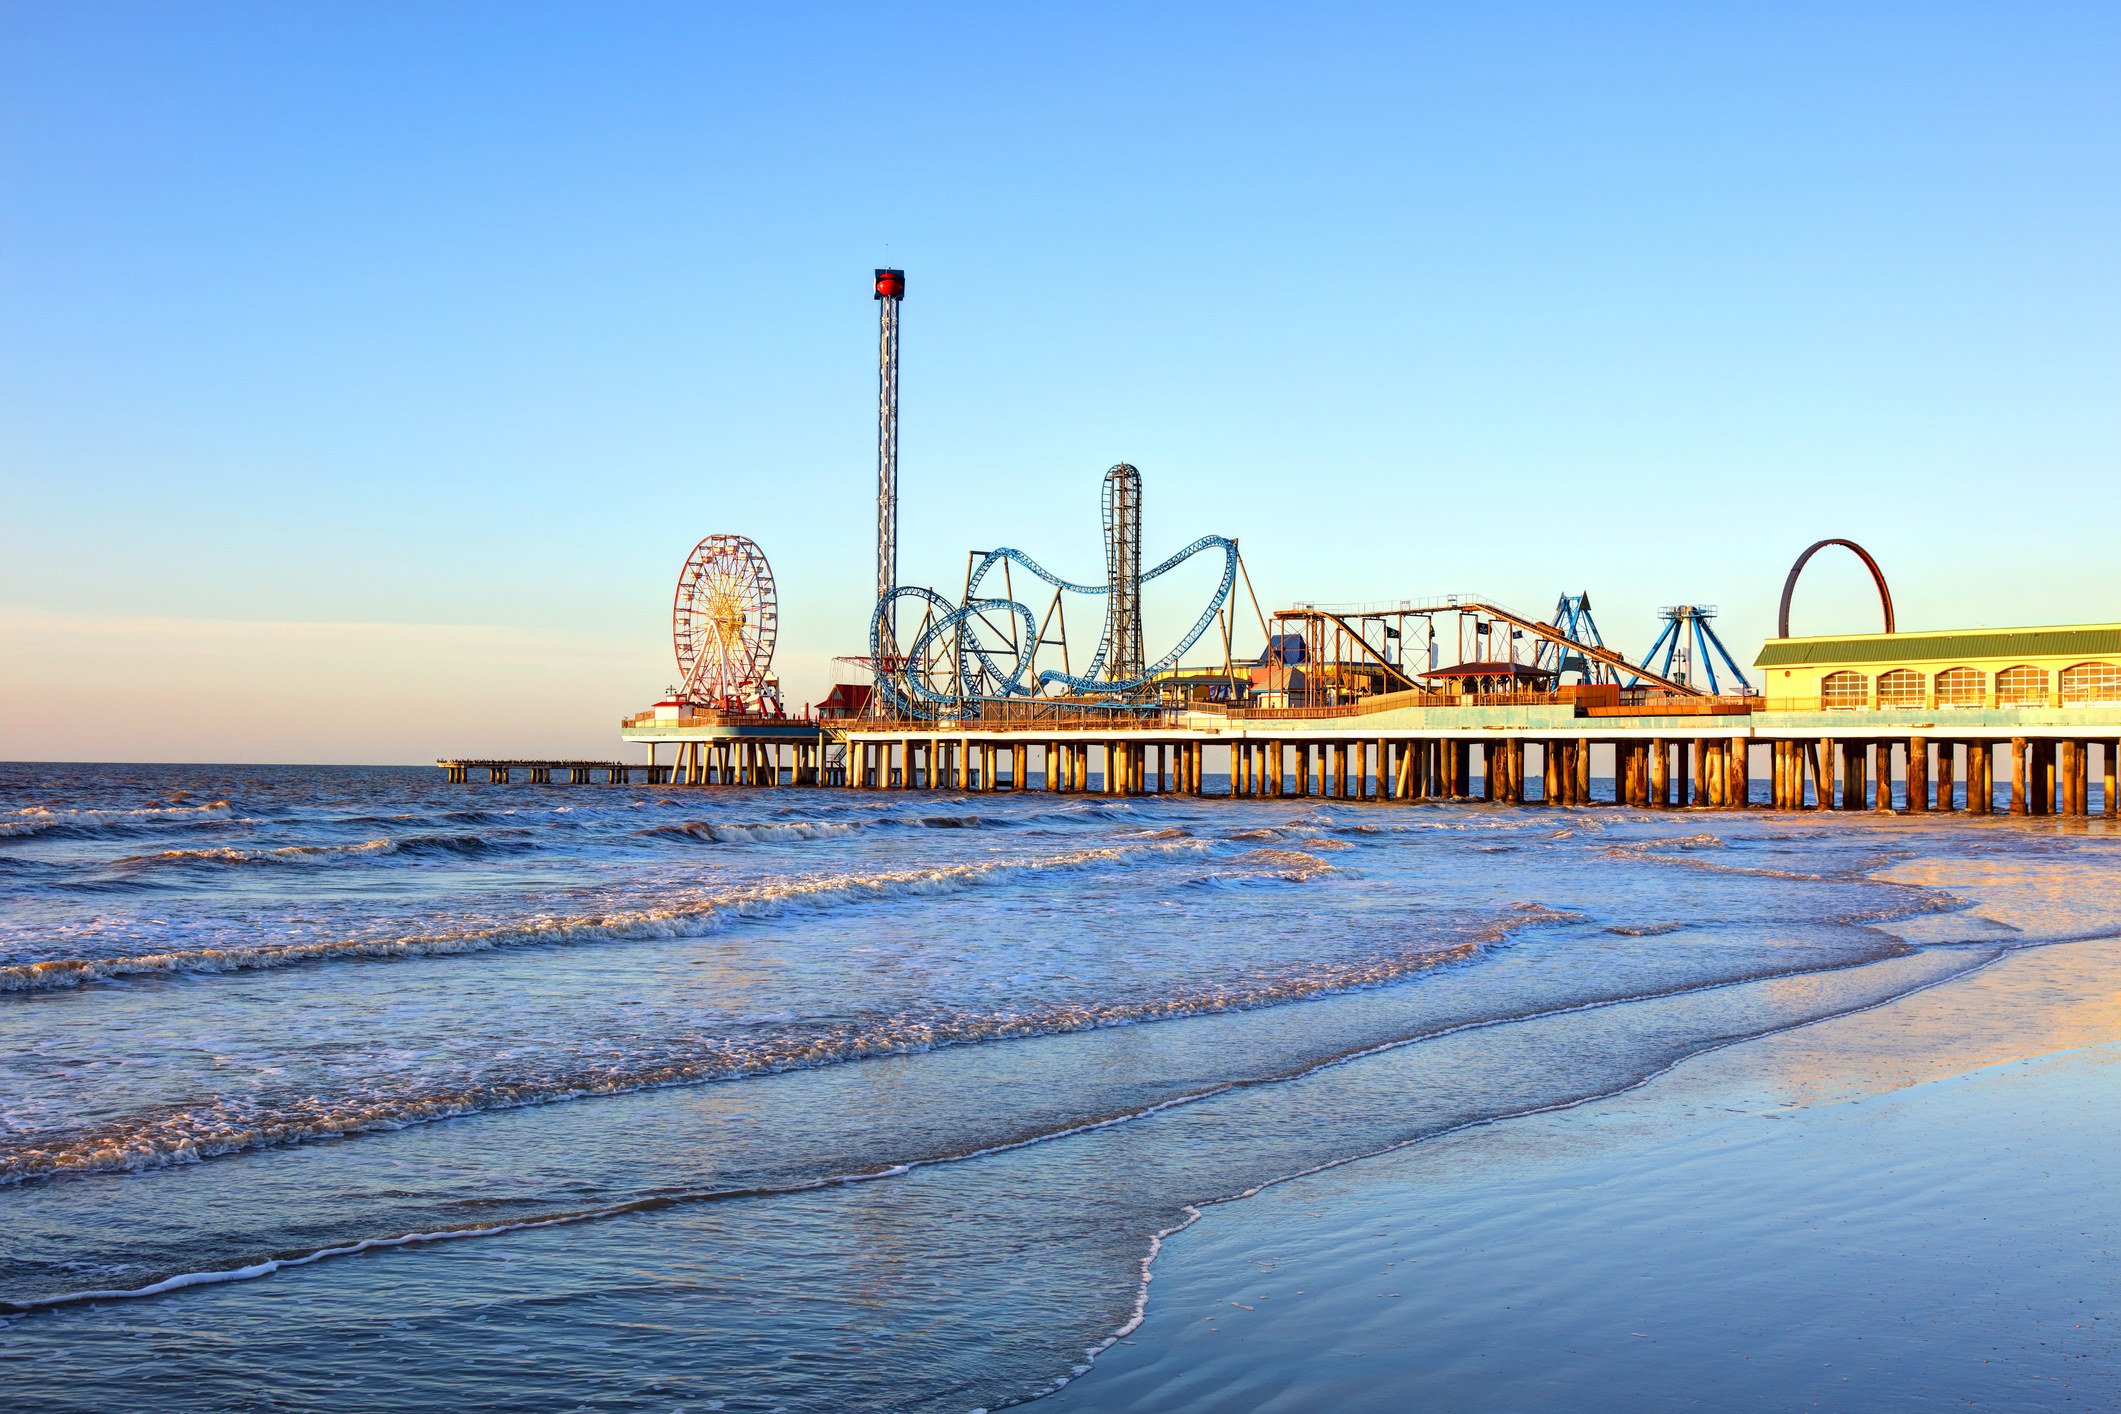 Island pier with amusement park rides and a beach